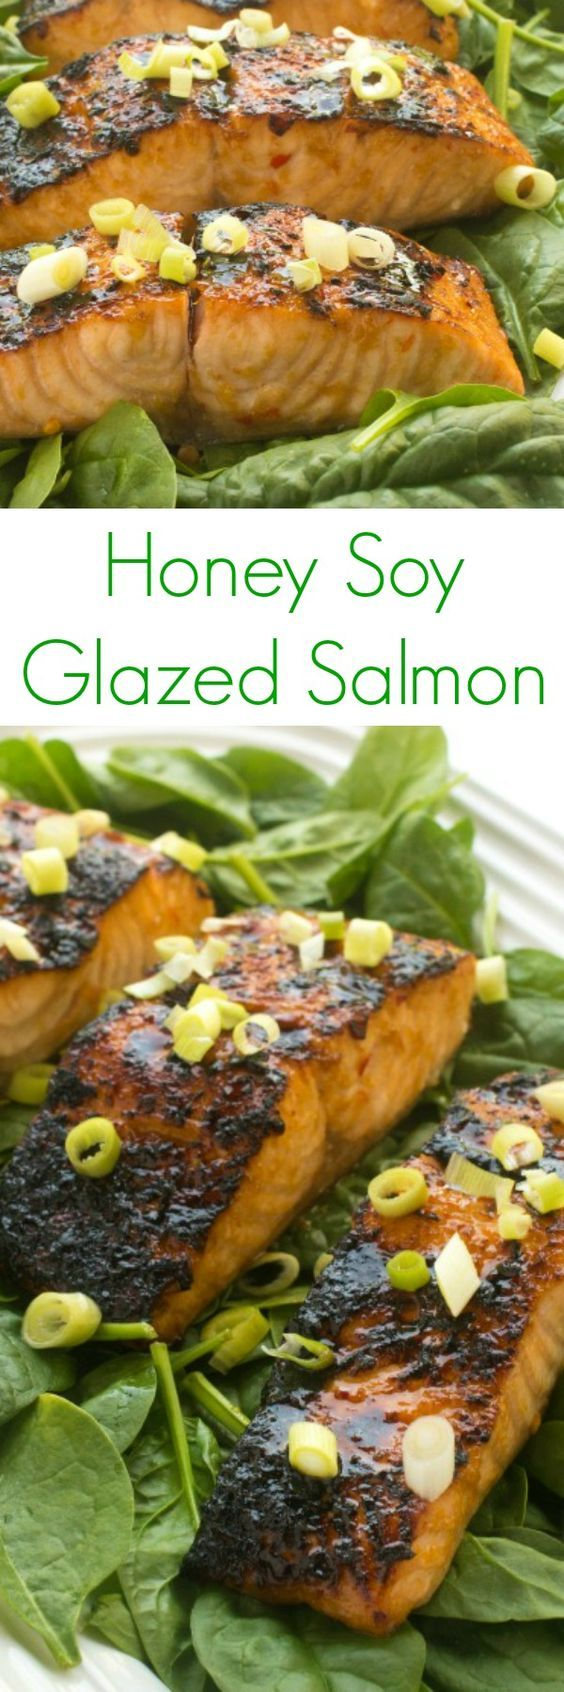 The ultimate fast weeknight dinner recipe, this Honey Soy Glazed Salmon comes together in less than 15 minutes!